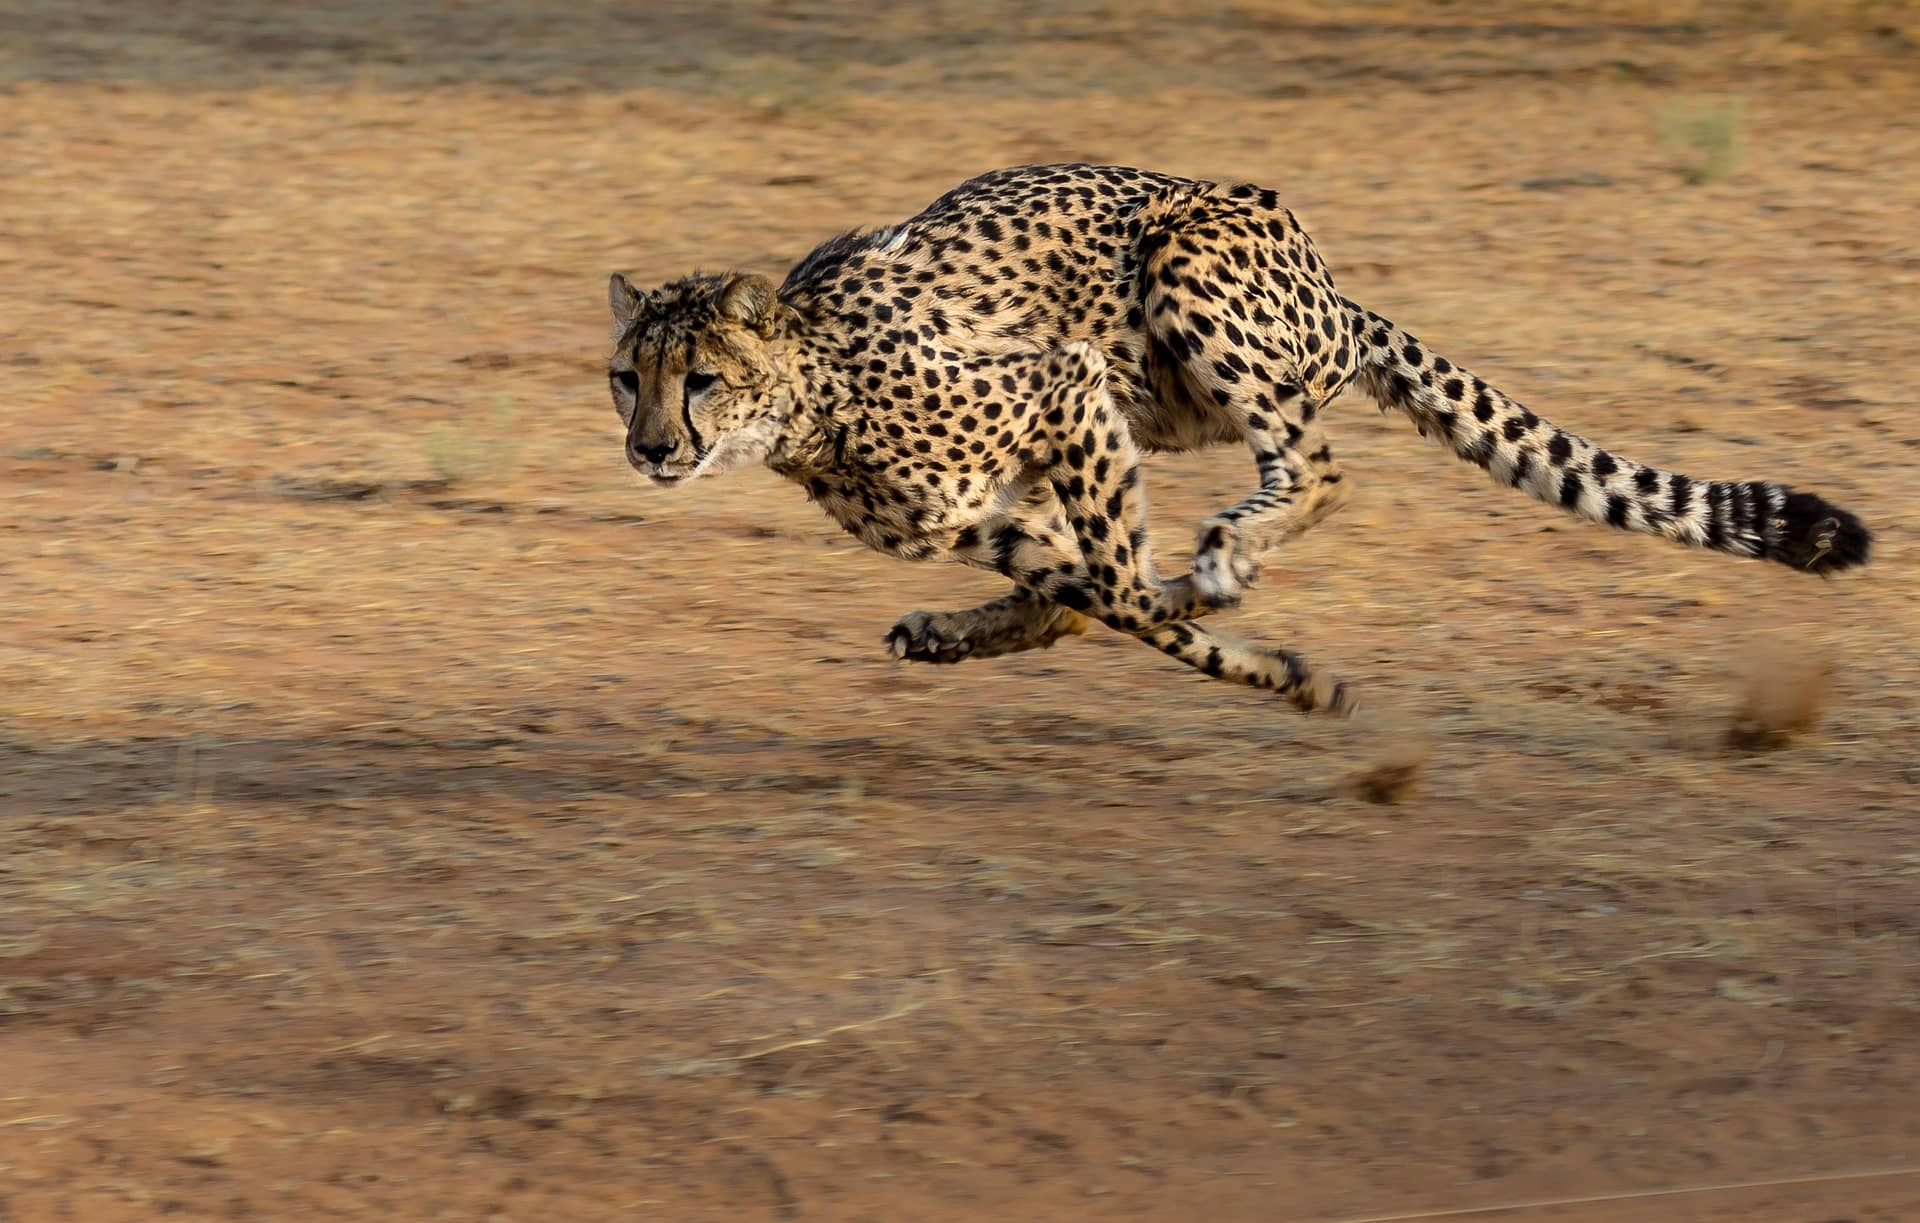 how fast is a cheetah